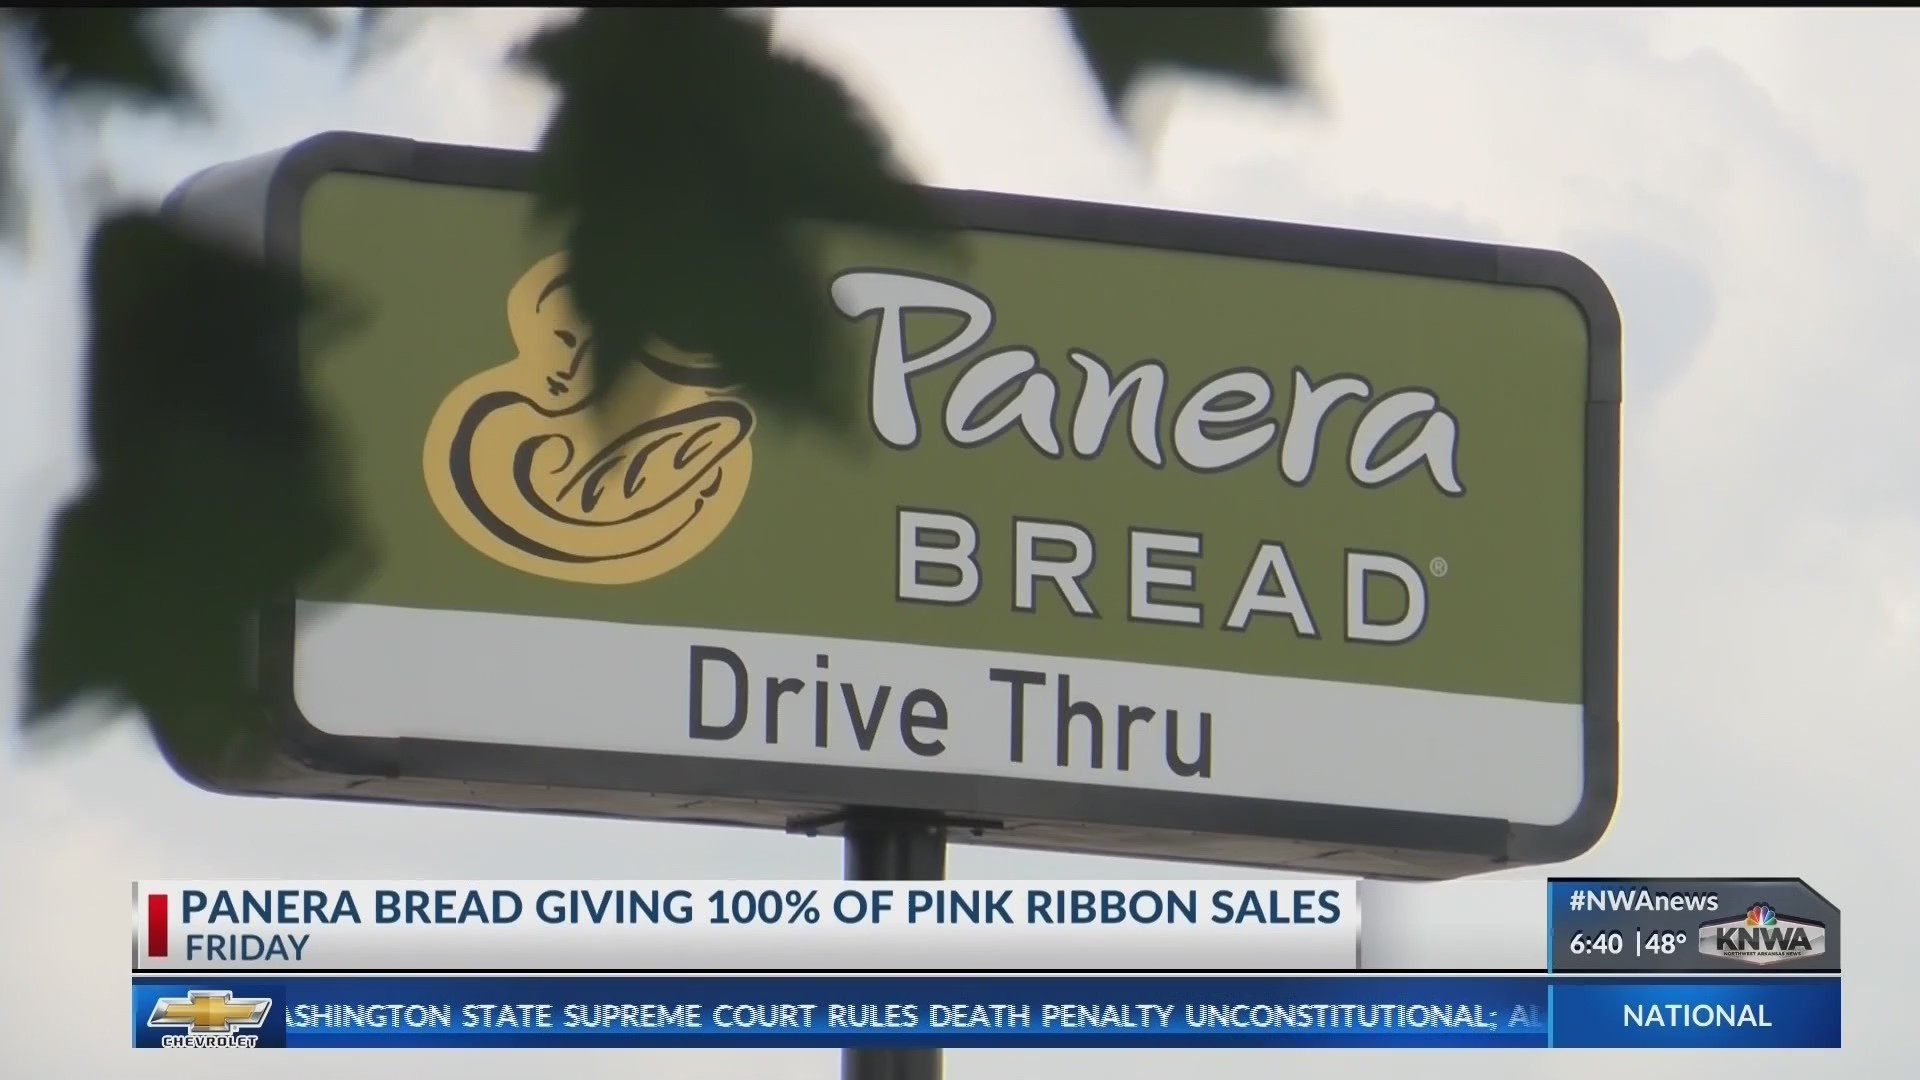 Panera_Bread_Honors_Breast_Cancer_Awaren_0_20181012121430